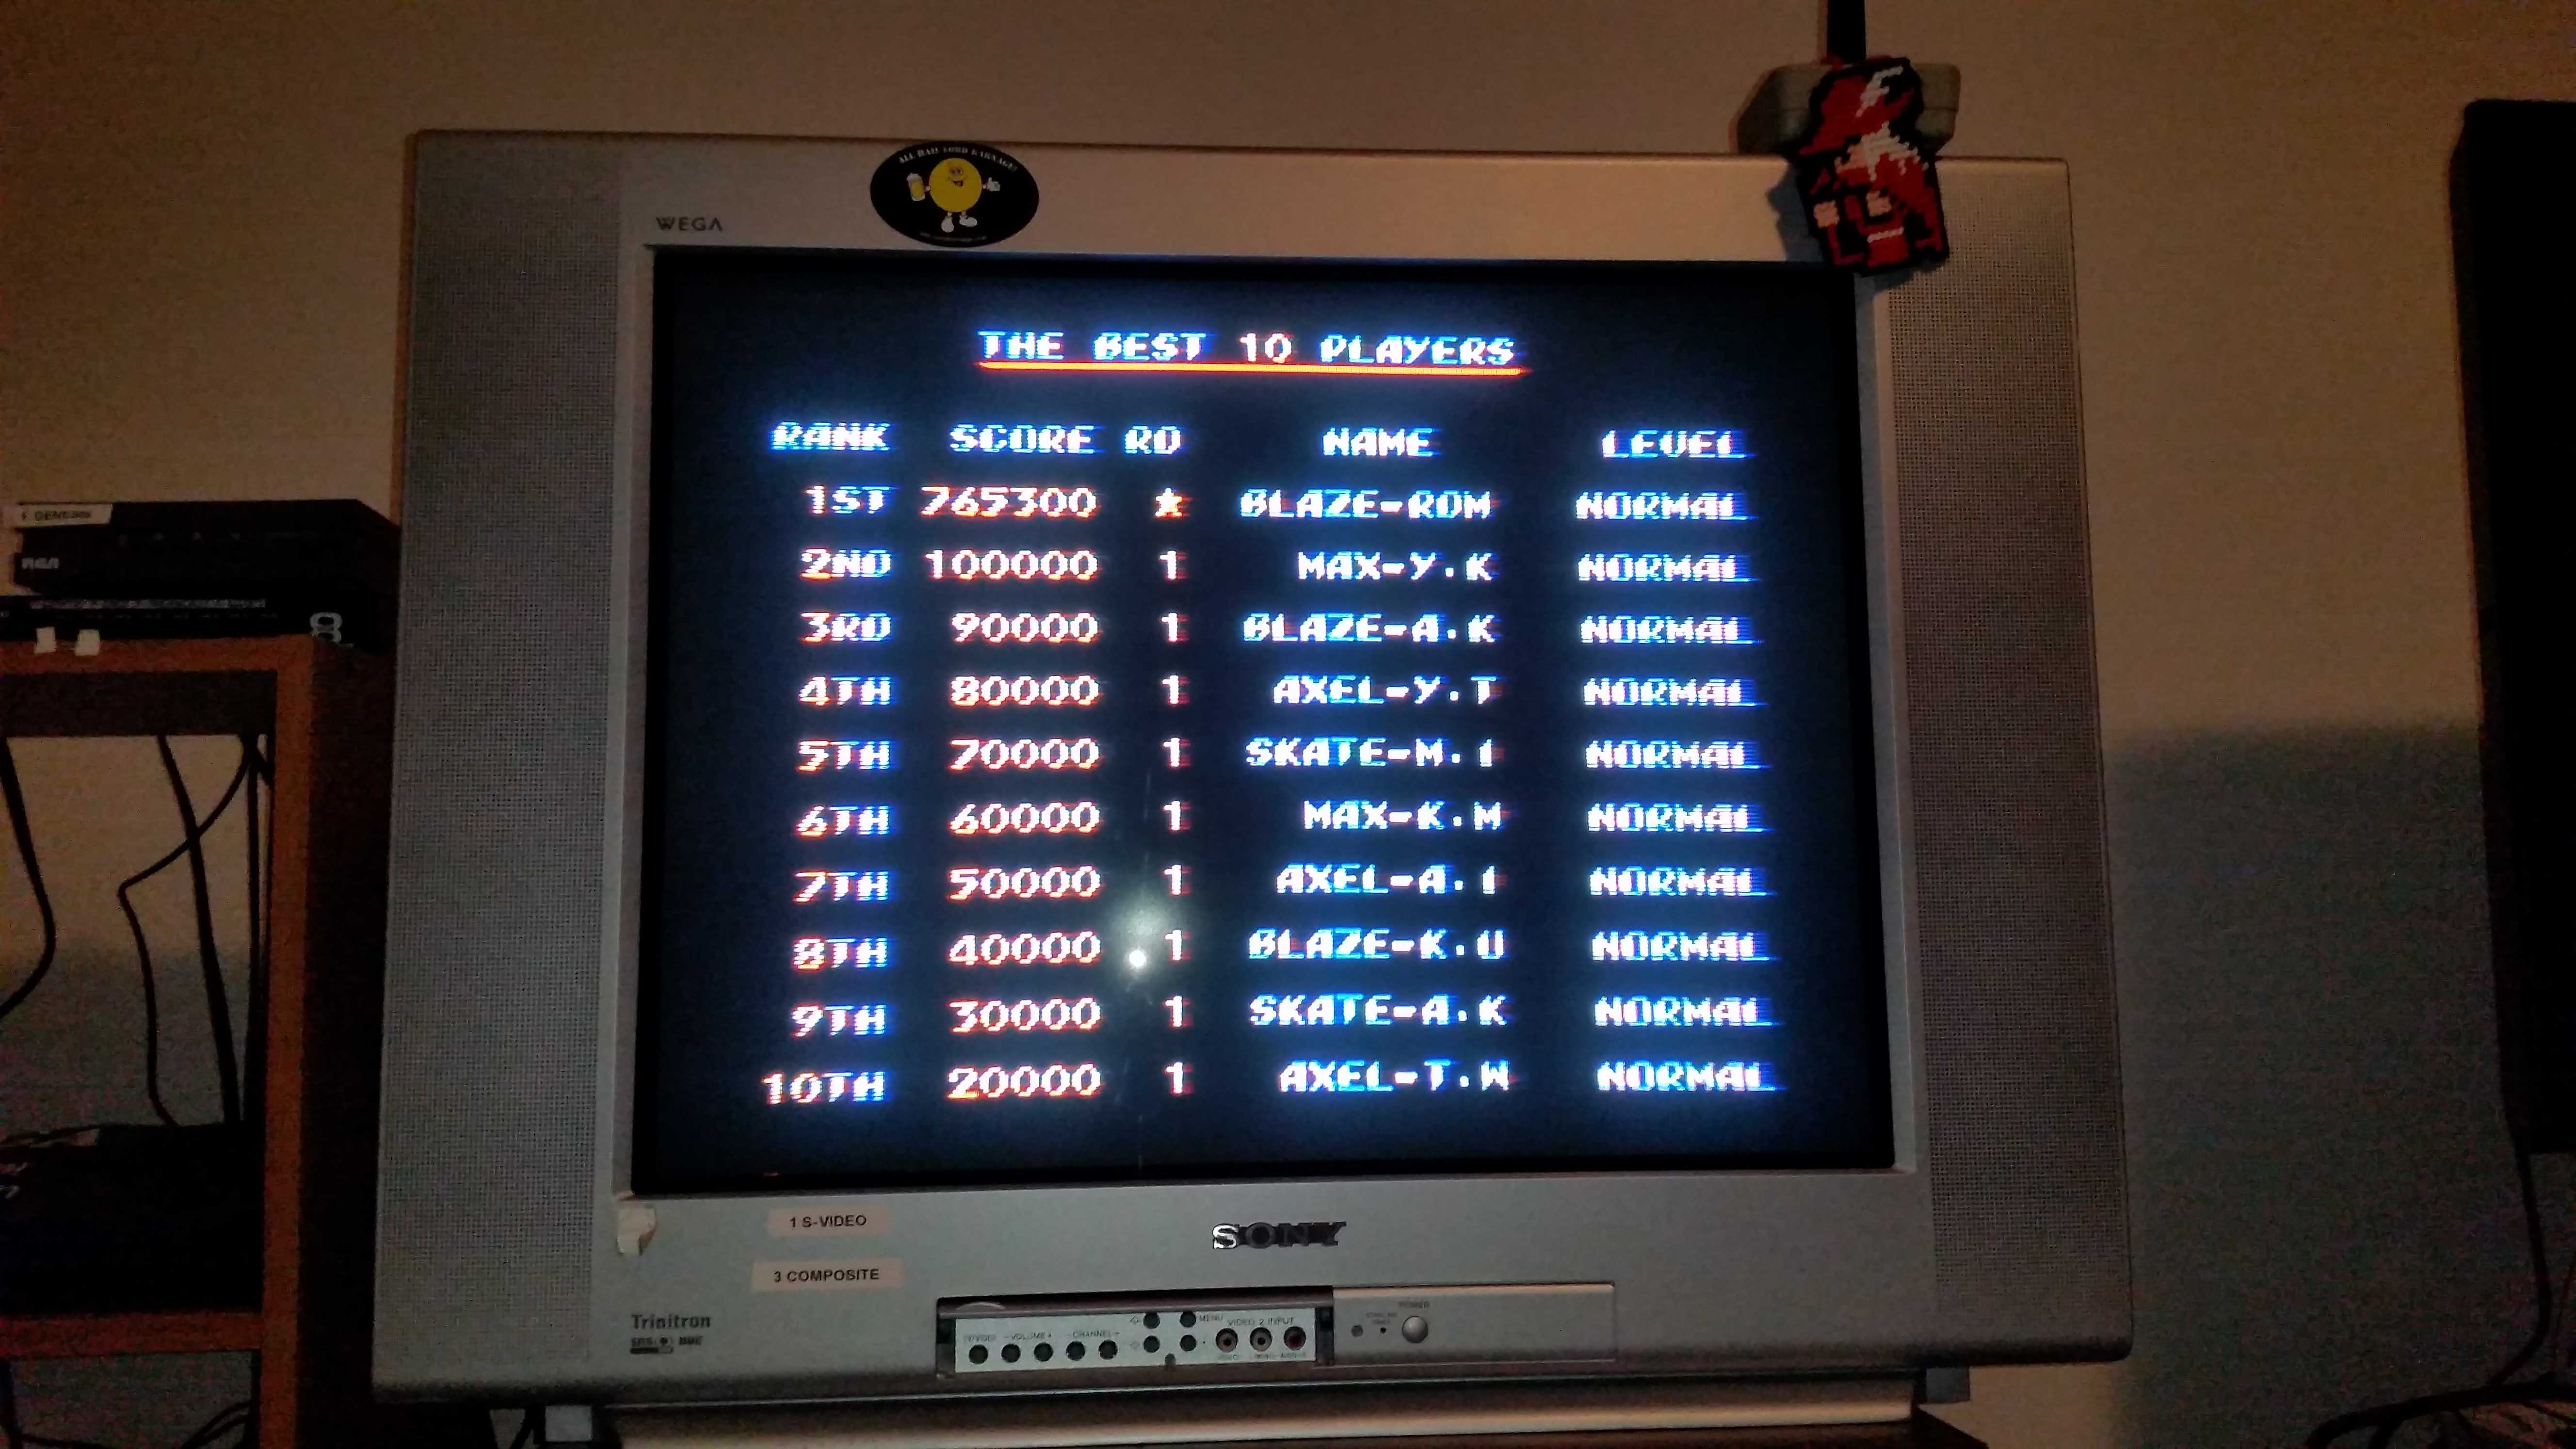 Streets of Rage 2: Normal 765,300 points